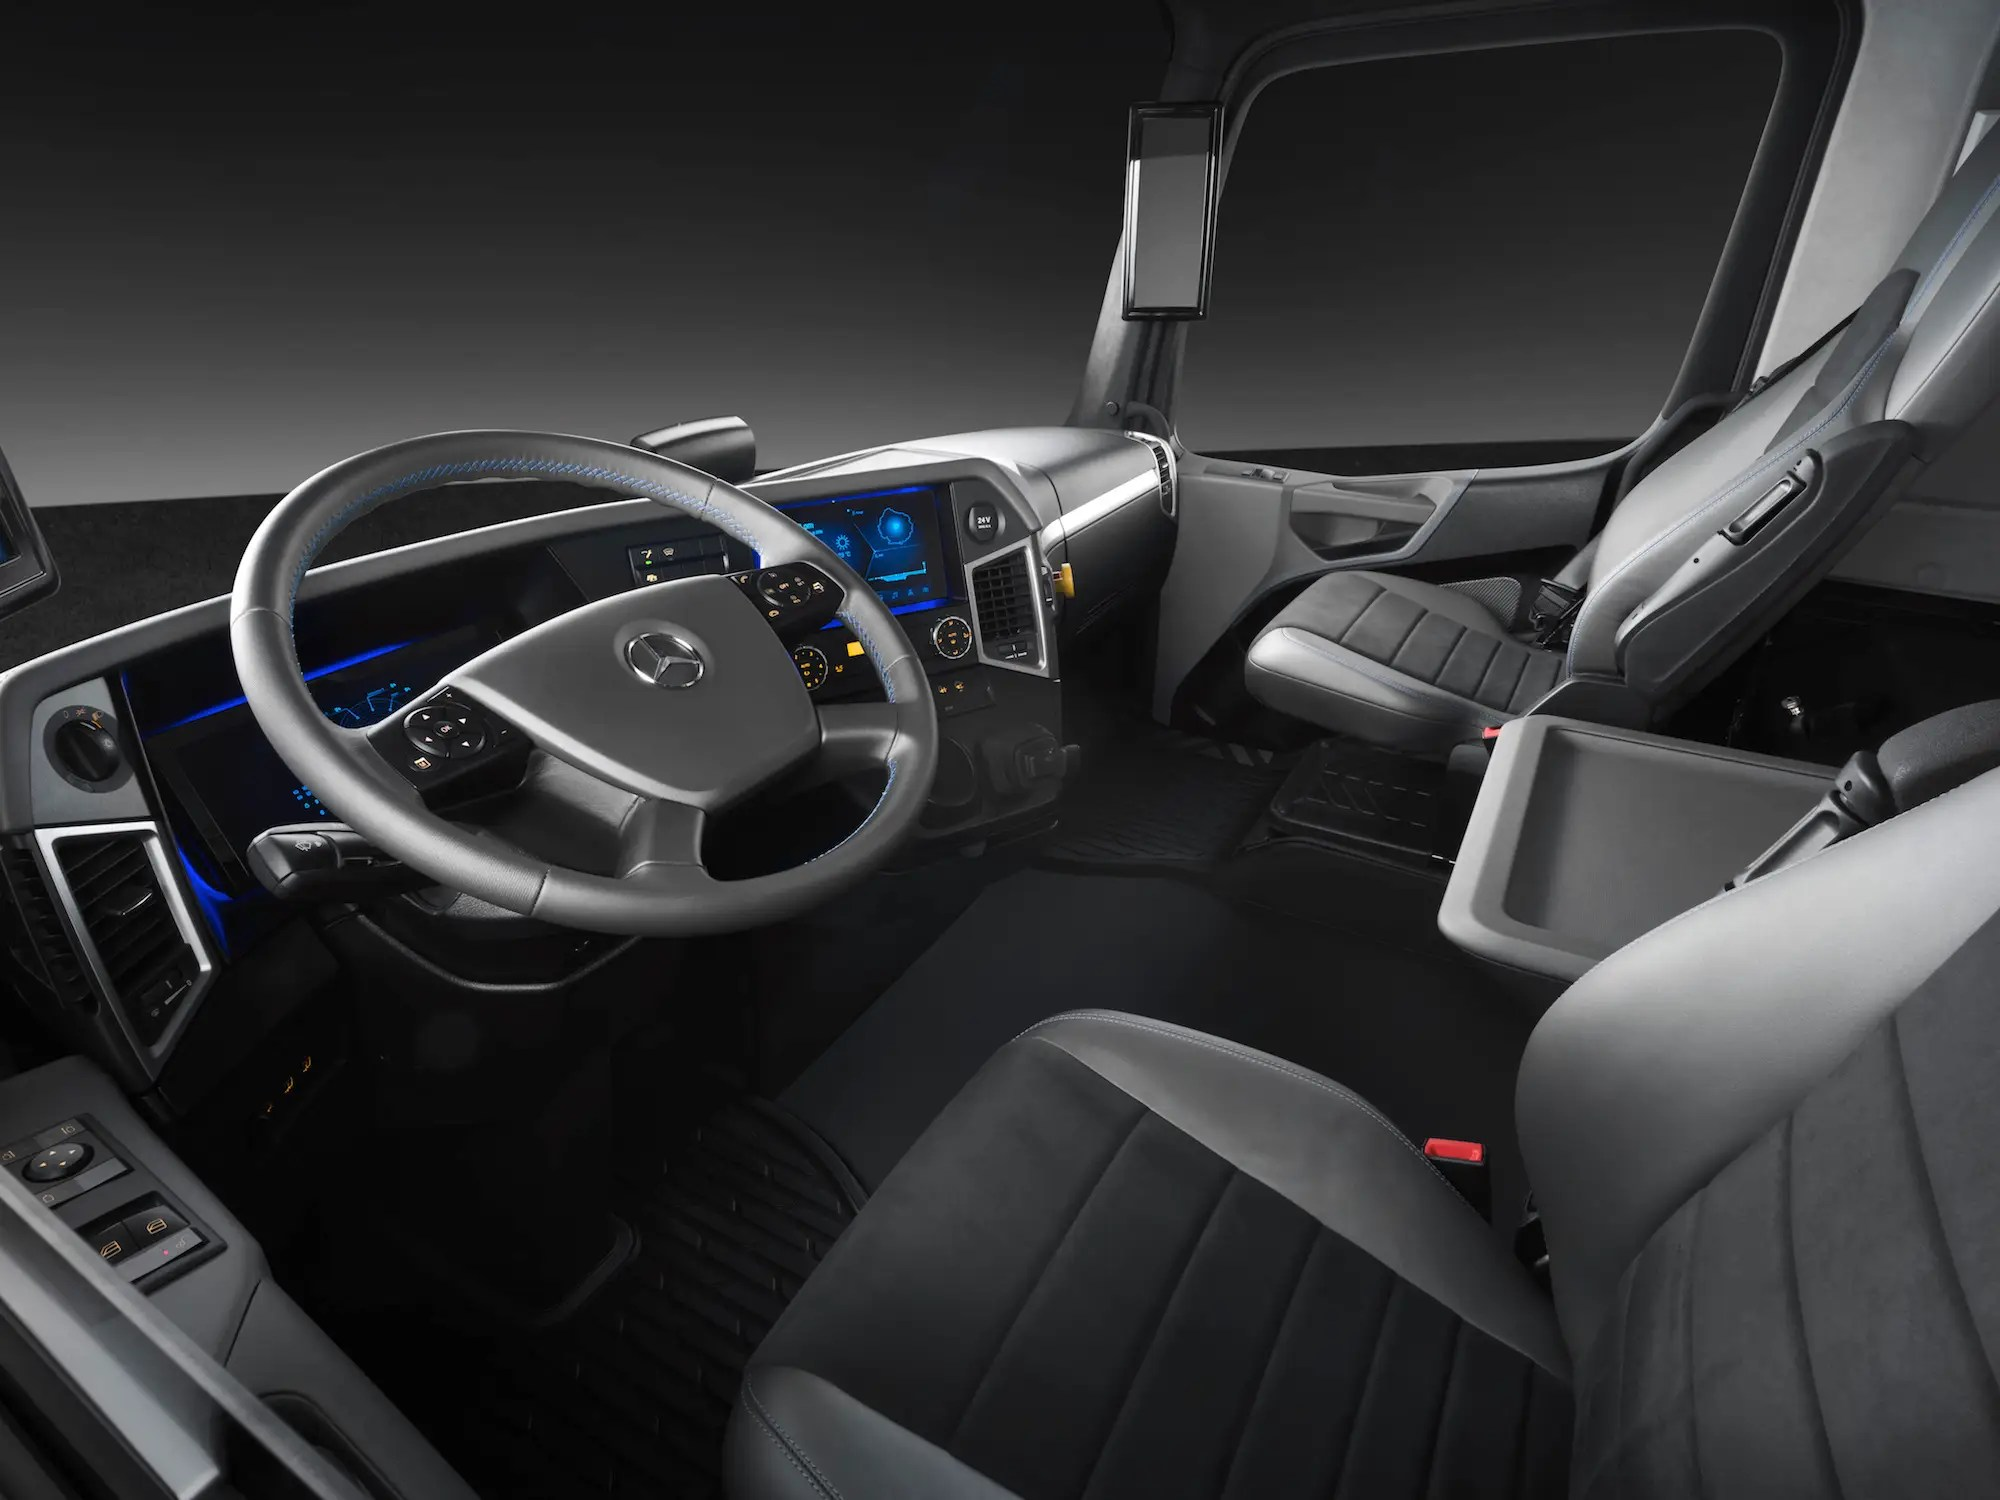 The truck comes with a digital driver's instrument and a 12.3-inch infotainment display on the center of the dashboard. That central display provides information about the truck driver's route.